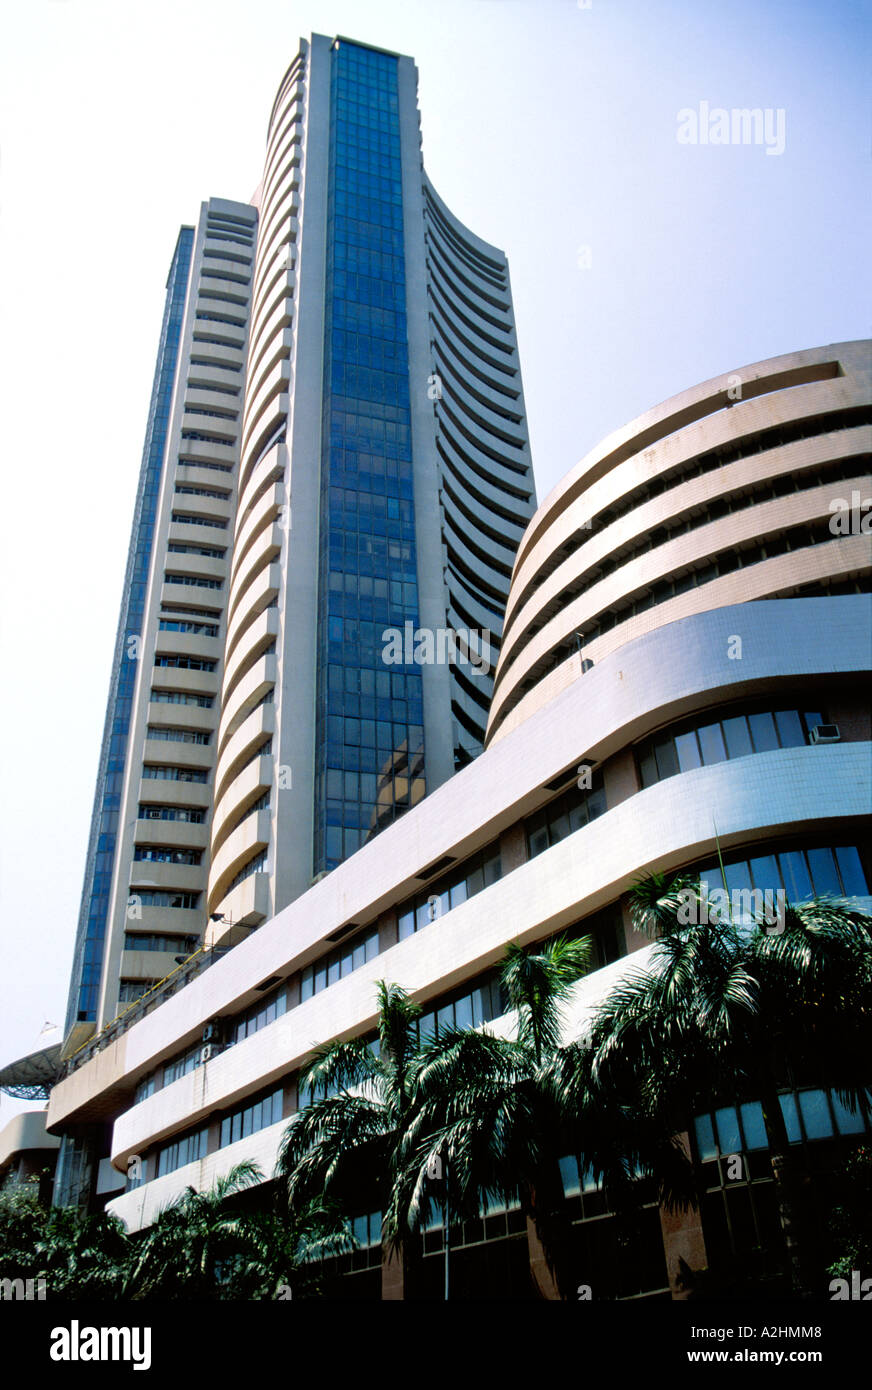 bombay stock exchange history Latest current affairs in may, 2018 about bombay stock exchange (bse)  of 30  well-established and financially sound companies listed on bombay stock.